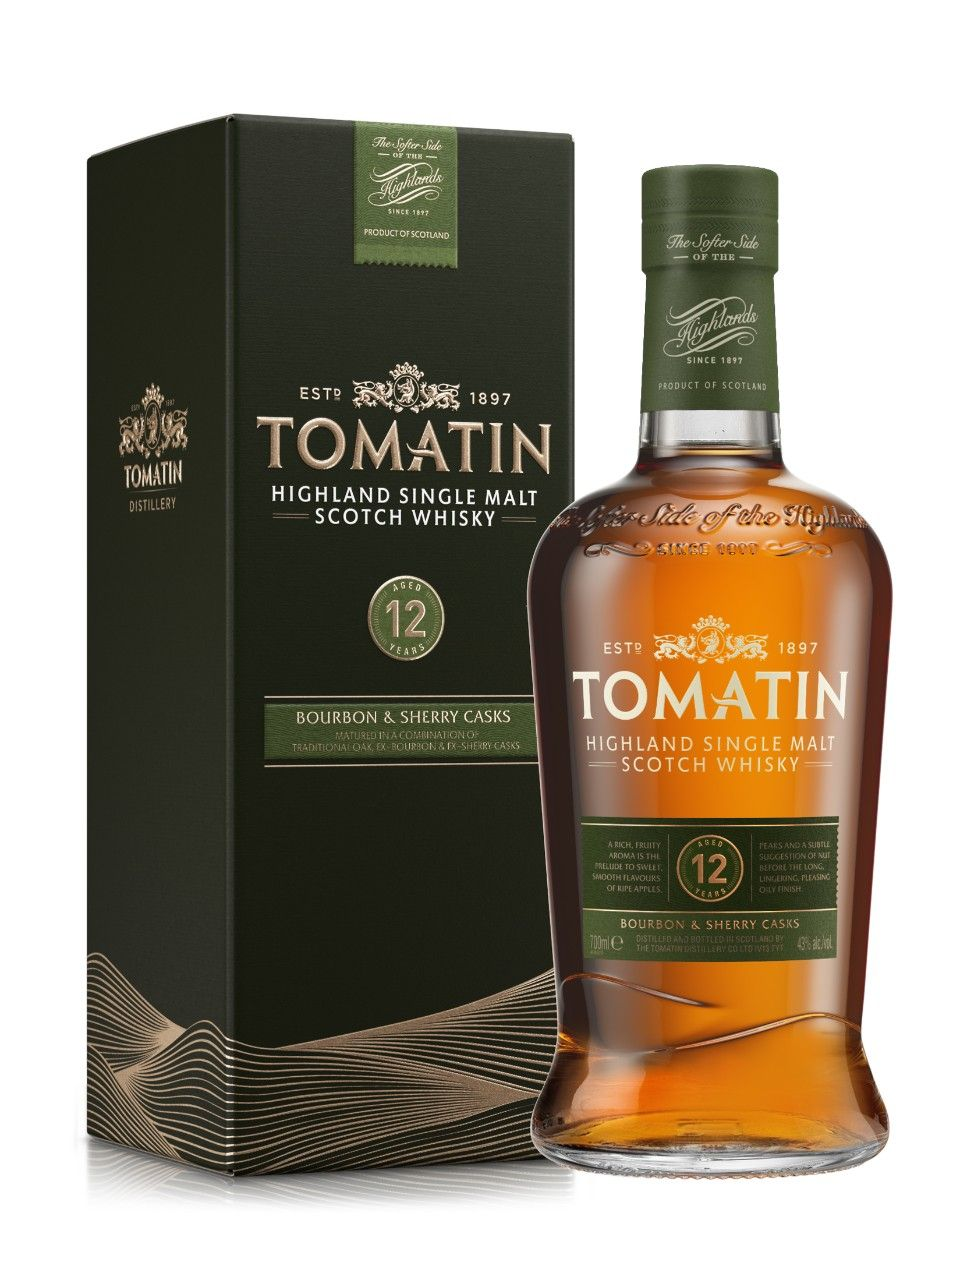 Tomatin 12 Year Old Highland Single Malt Malt Whisky Scotch Whisky Whisky Bottle